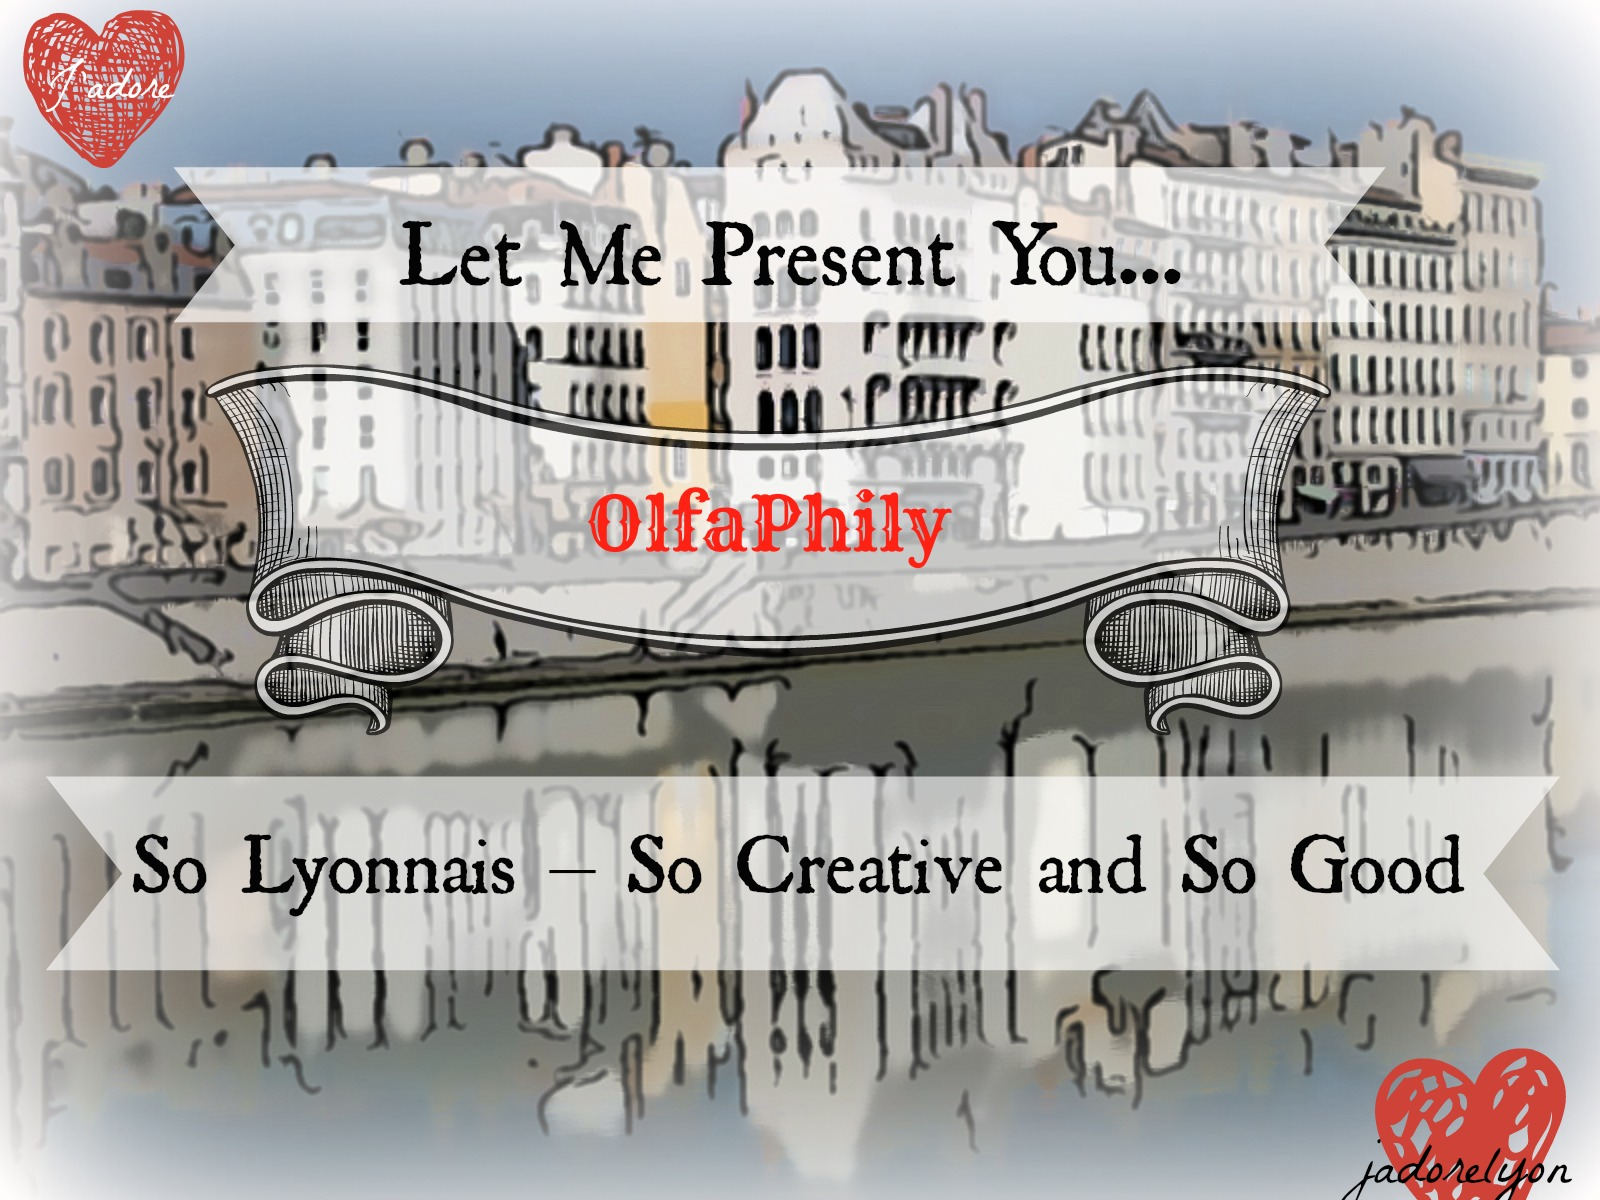 Let Me Present You - OlfaPhily